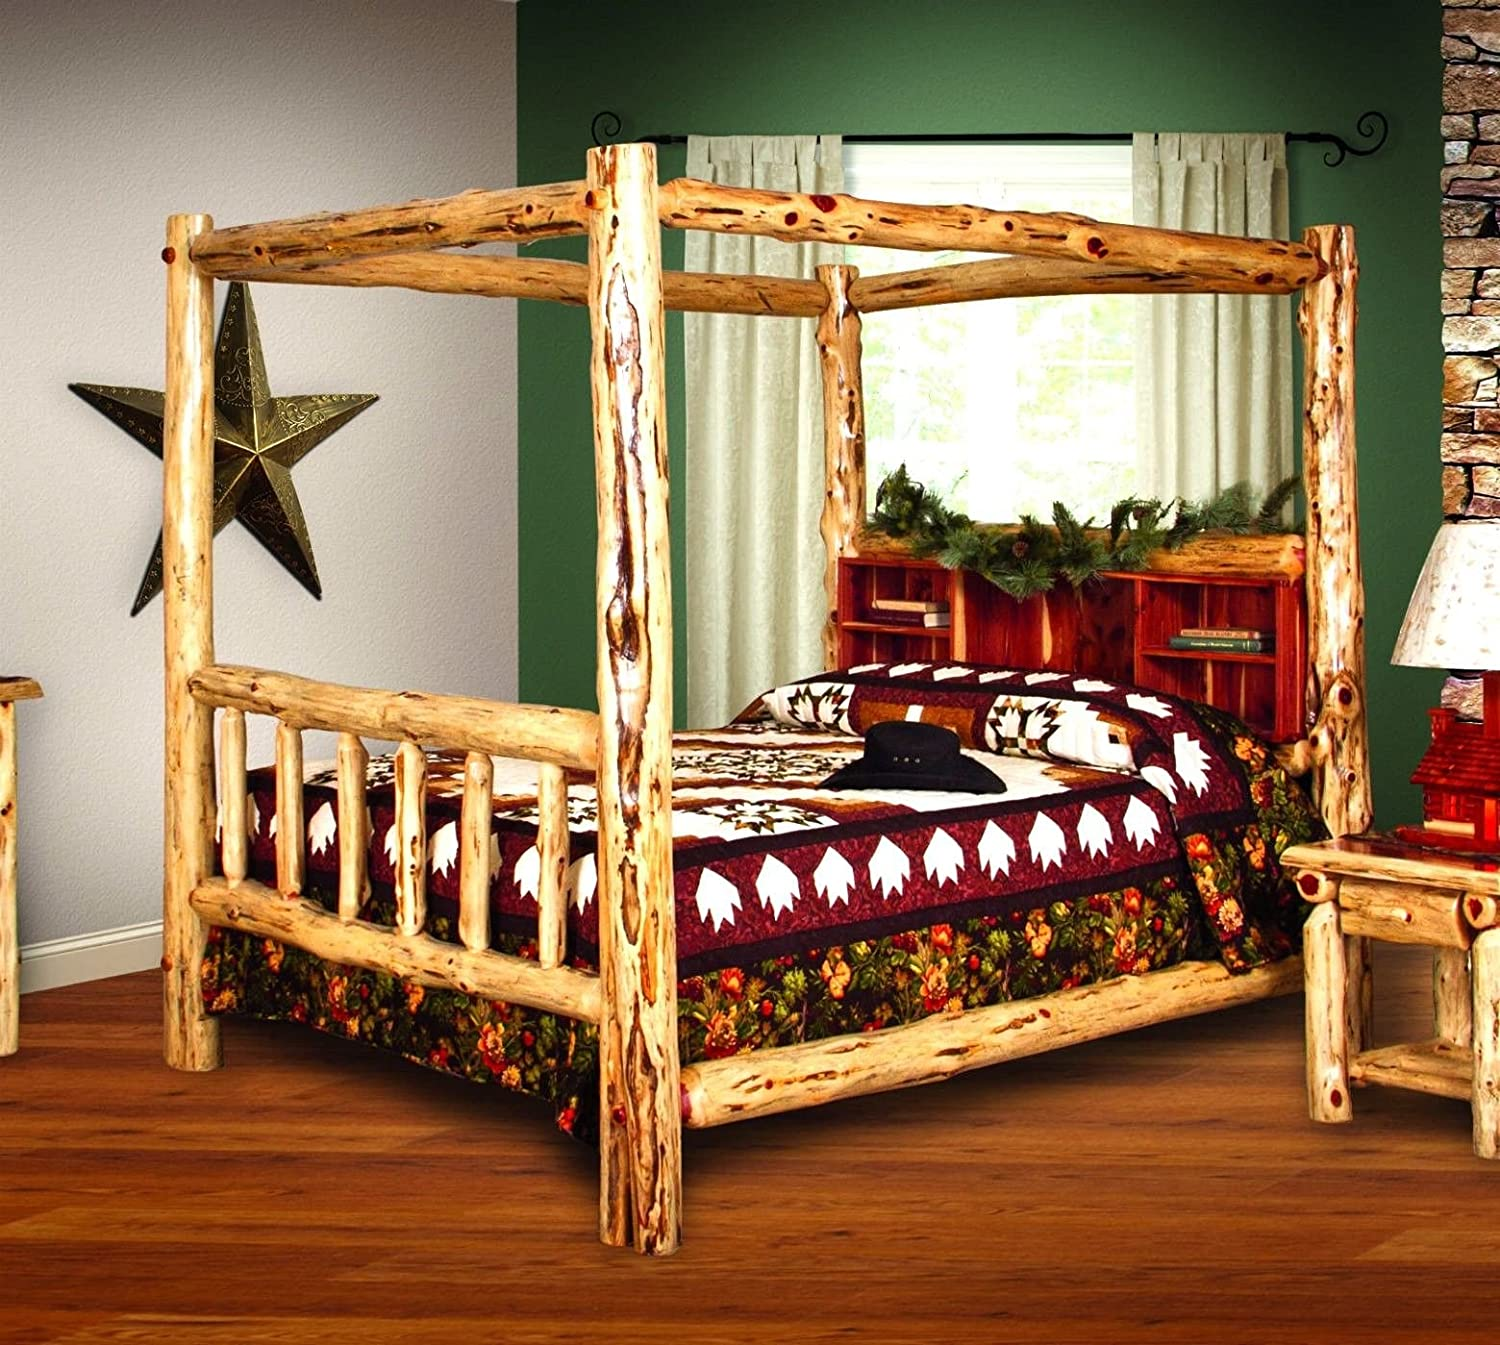 - Amazon.com: Rustic Red Cedar Log Bed- King Size - Canopy Bed